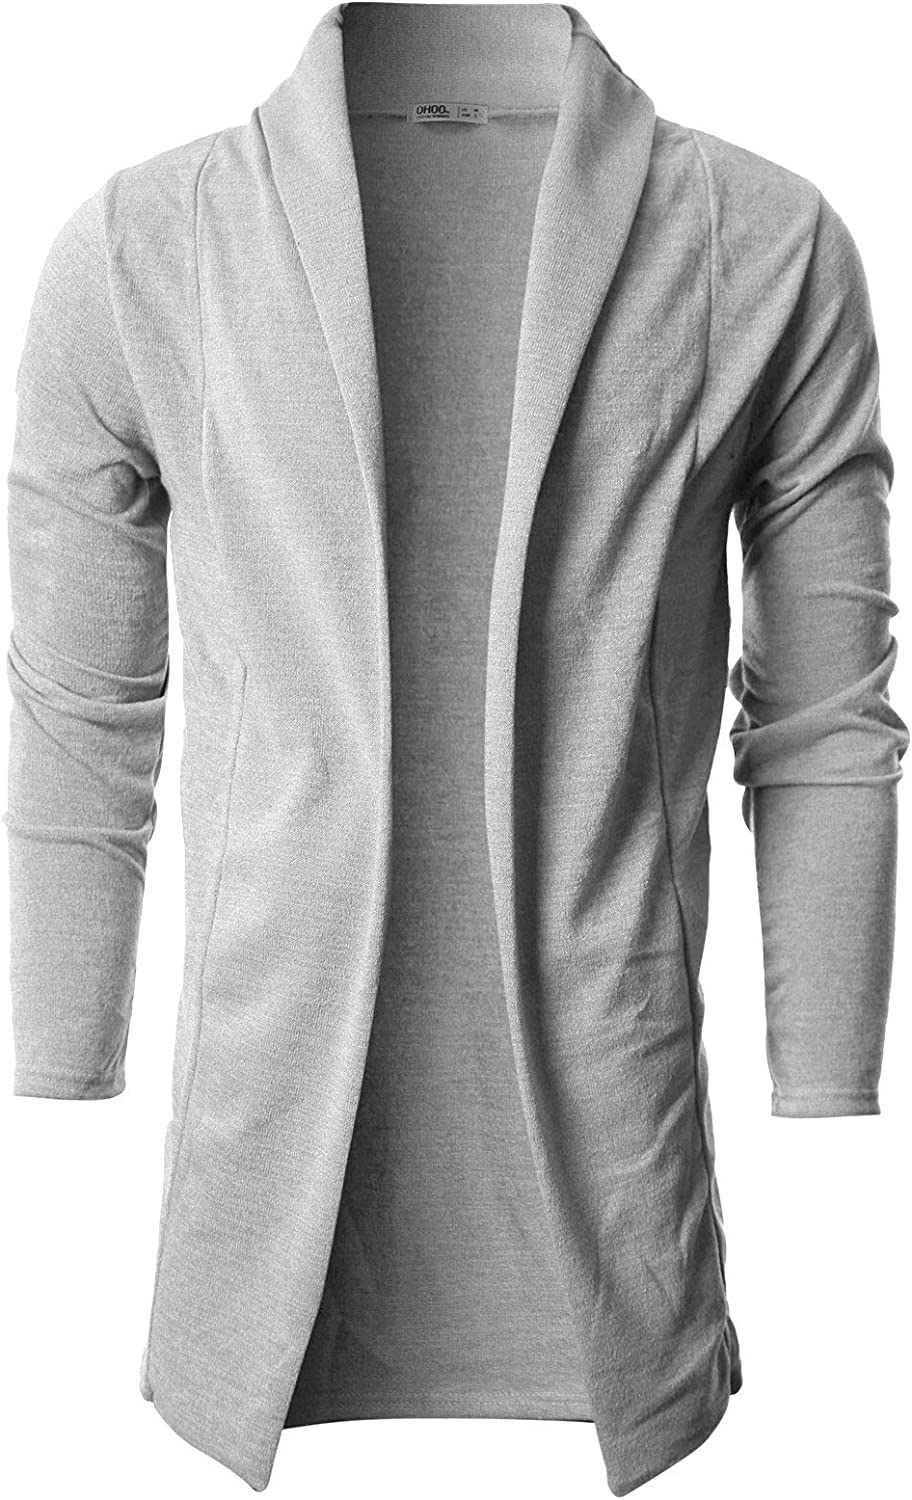 OHOO Mens Long Sleeve Draped Lightweight Open Front Shawl Collar Longline Cardigan